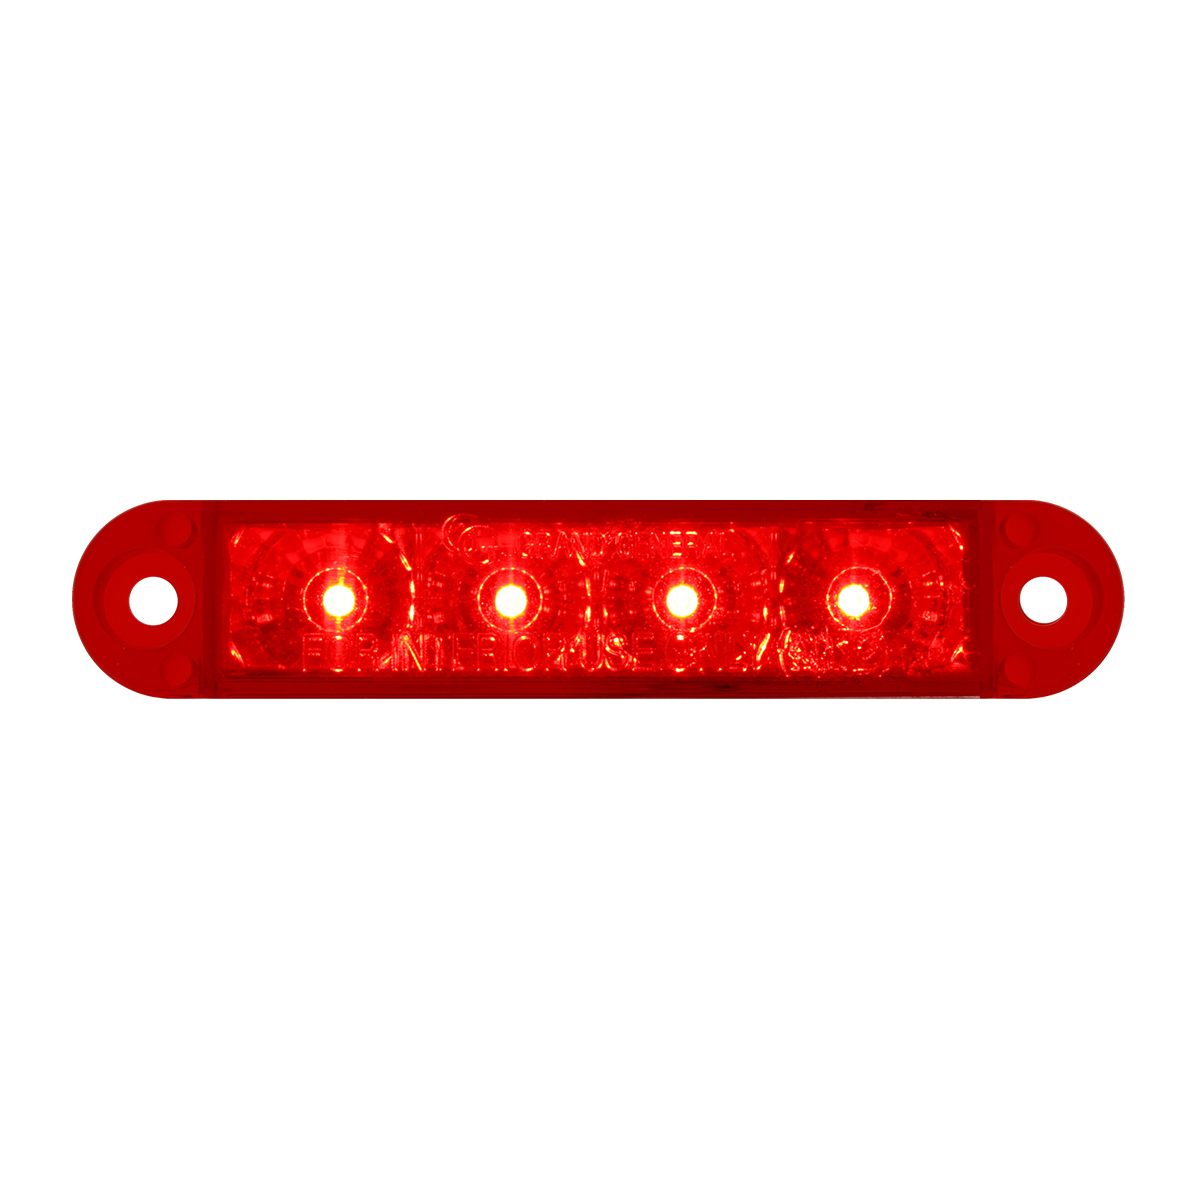 "76072 3.5"" Dual Function LED Light in Red/Red"